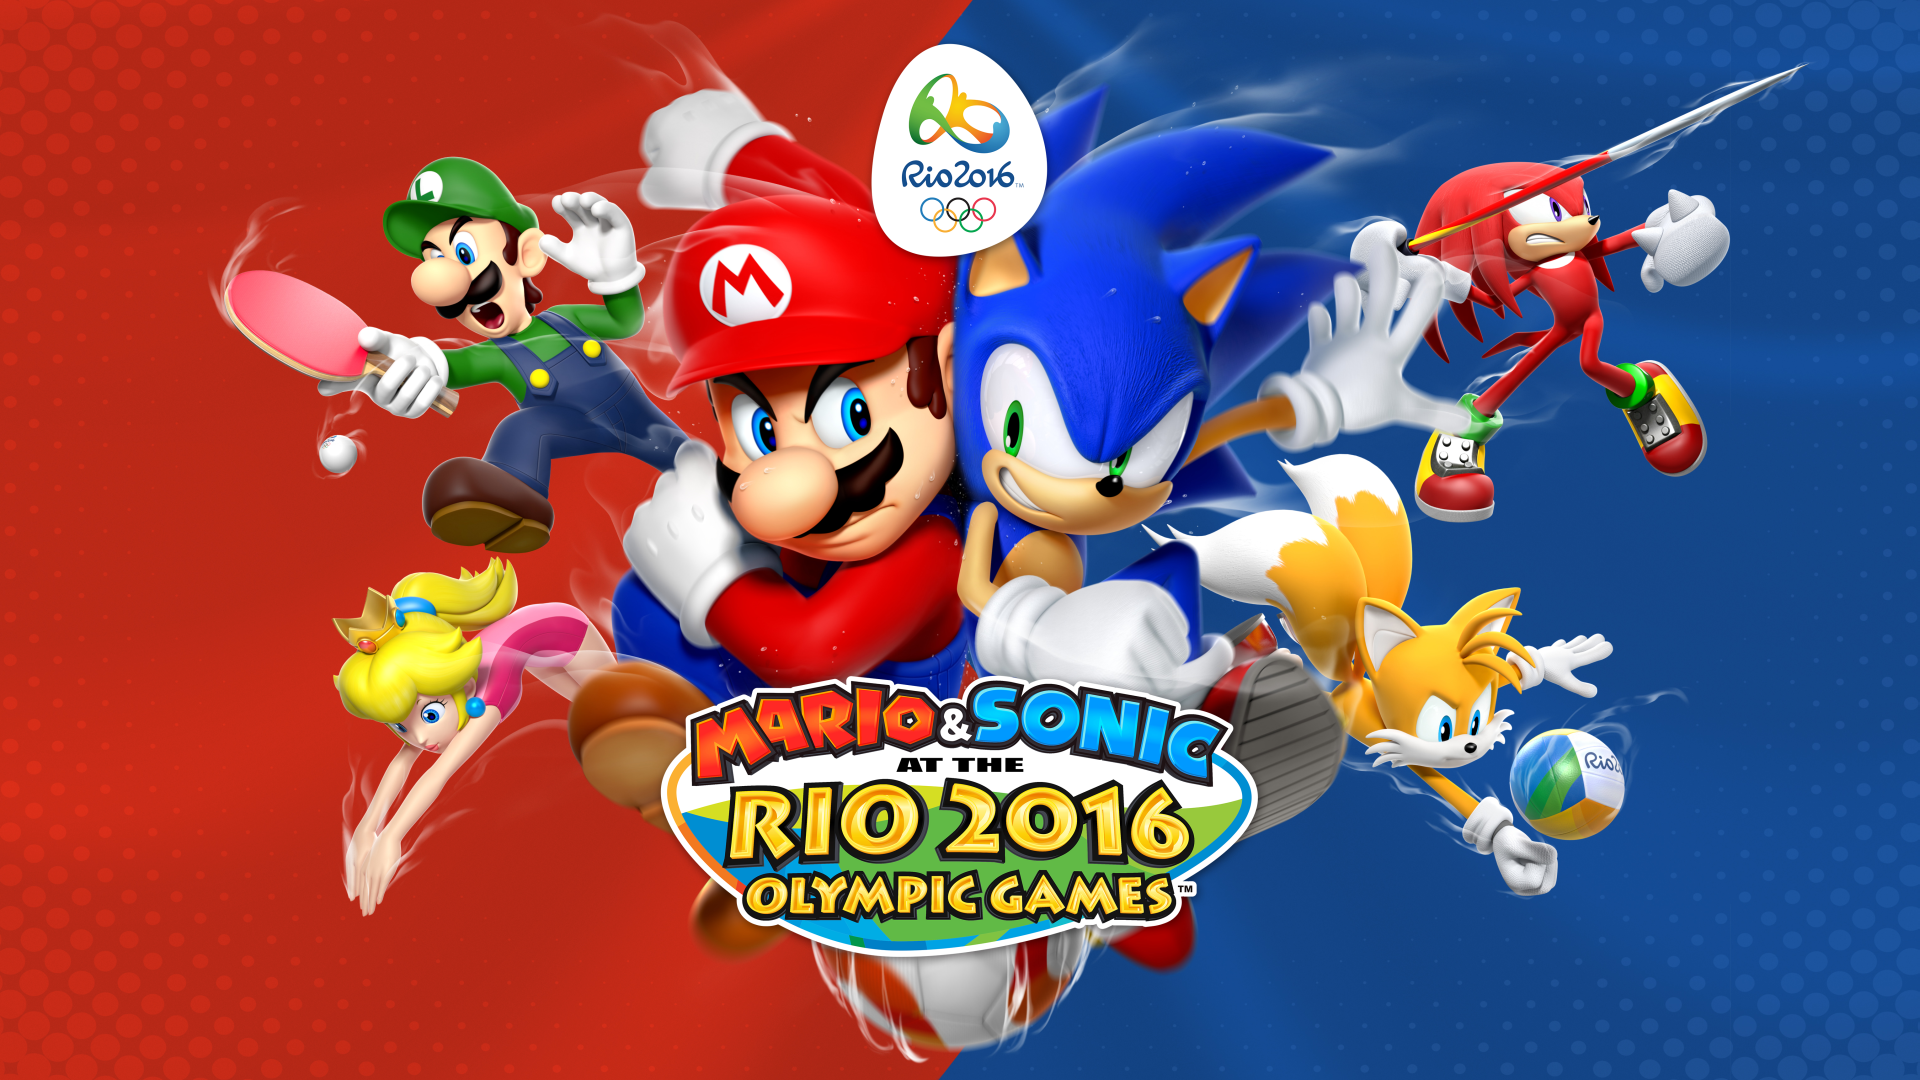 Mario & Sonic at the Rio 2016 Olympic Games (Wii U) Logo